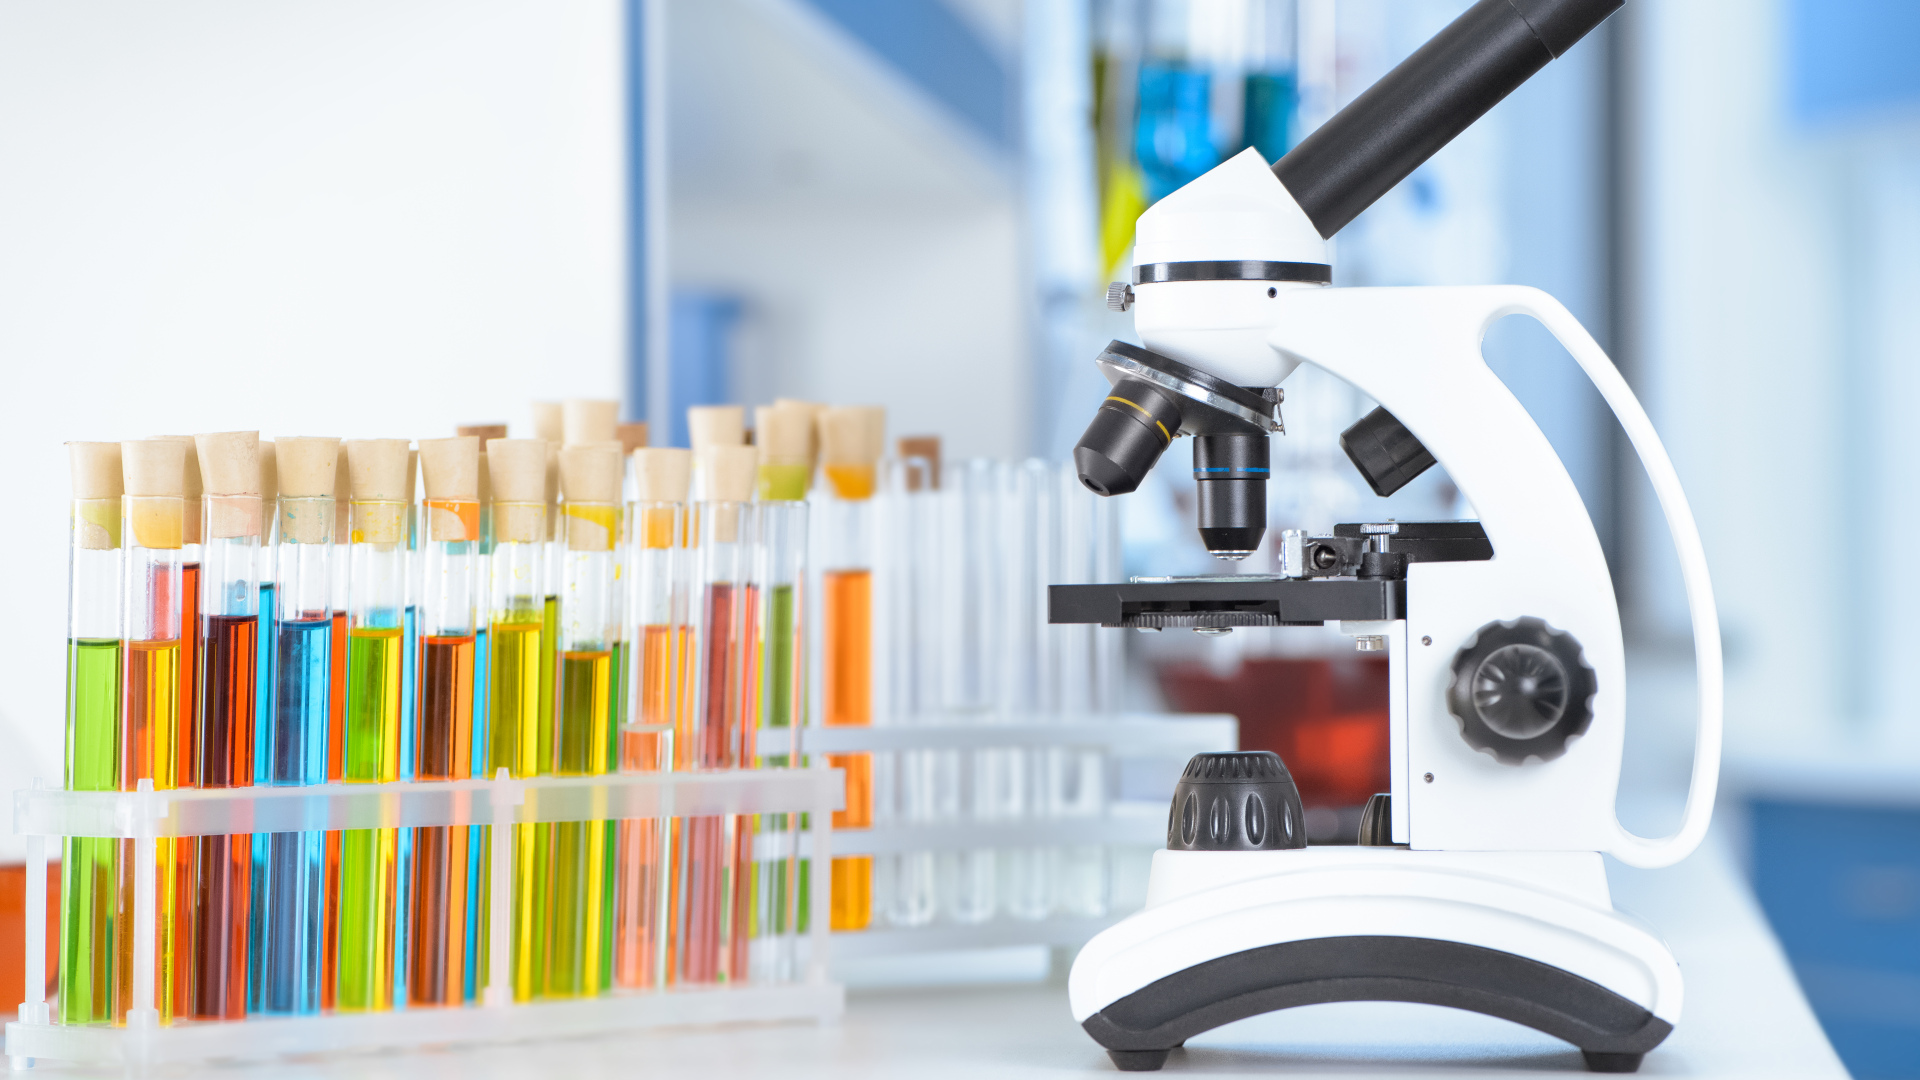 test tubes and microscope on table in laboratory